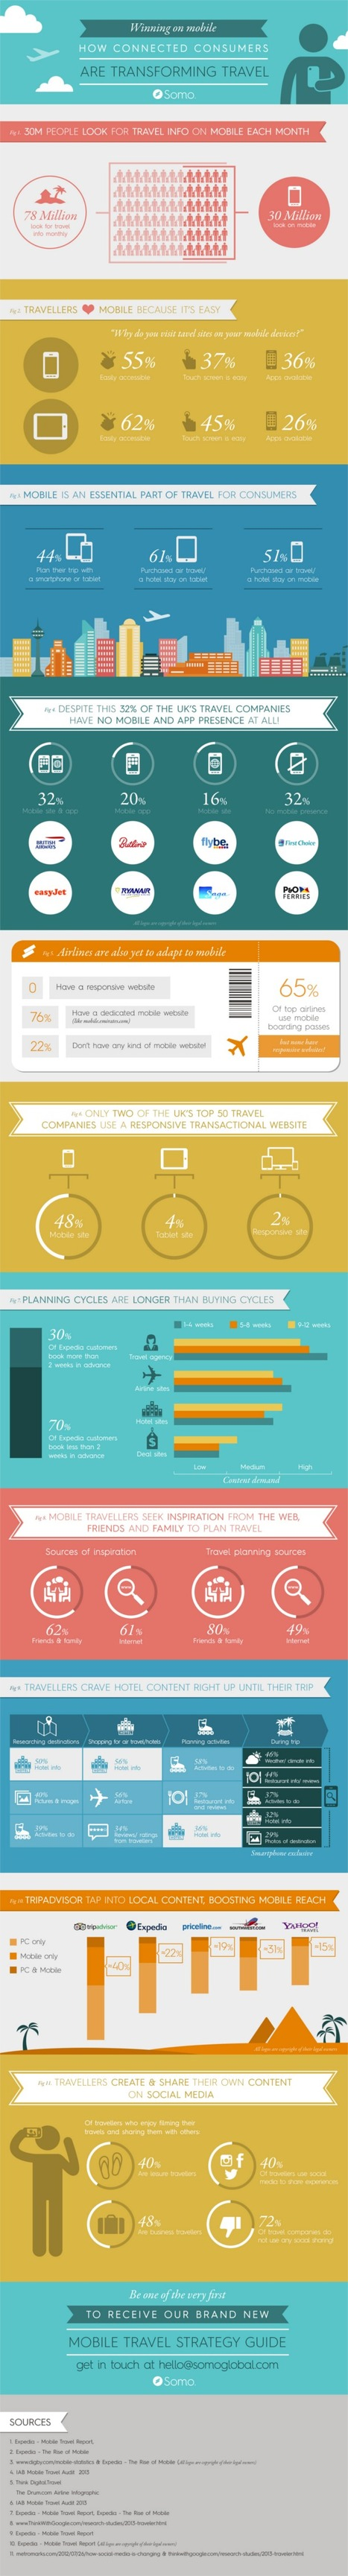 How are mobile consumers transforming travel? #Infographic | Social Media Marketing | Scoop.it